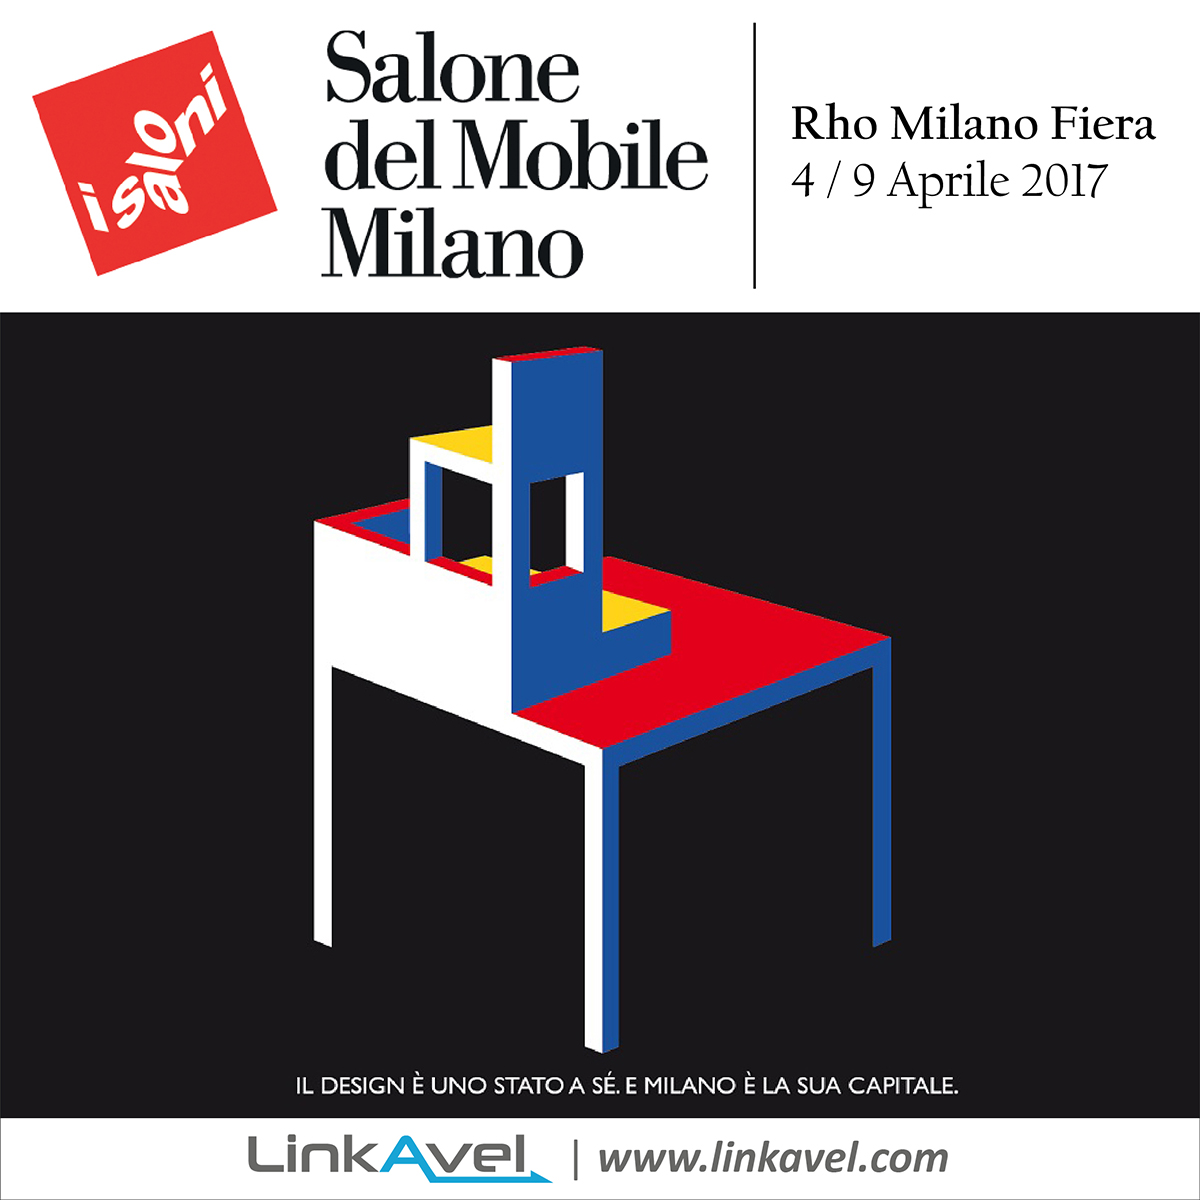 Salone del mobile milano 4 9 aprile 2017 linkavel for Rho fiera salone del mobile